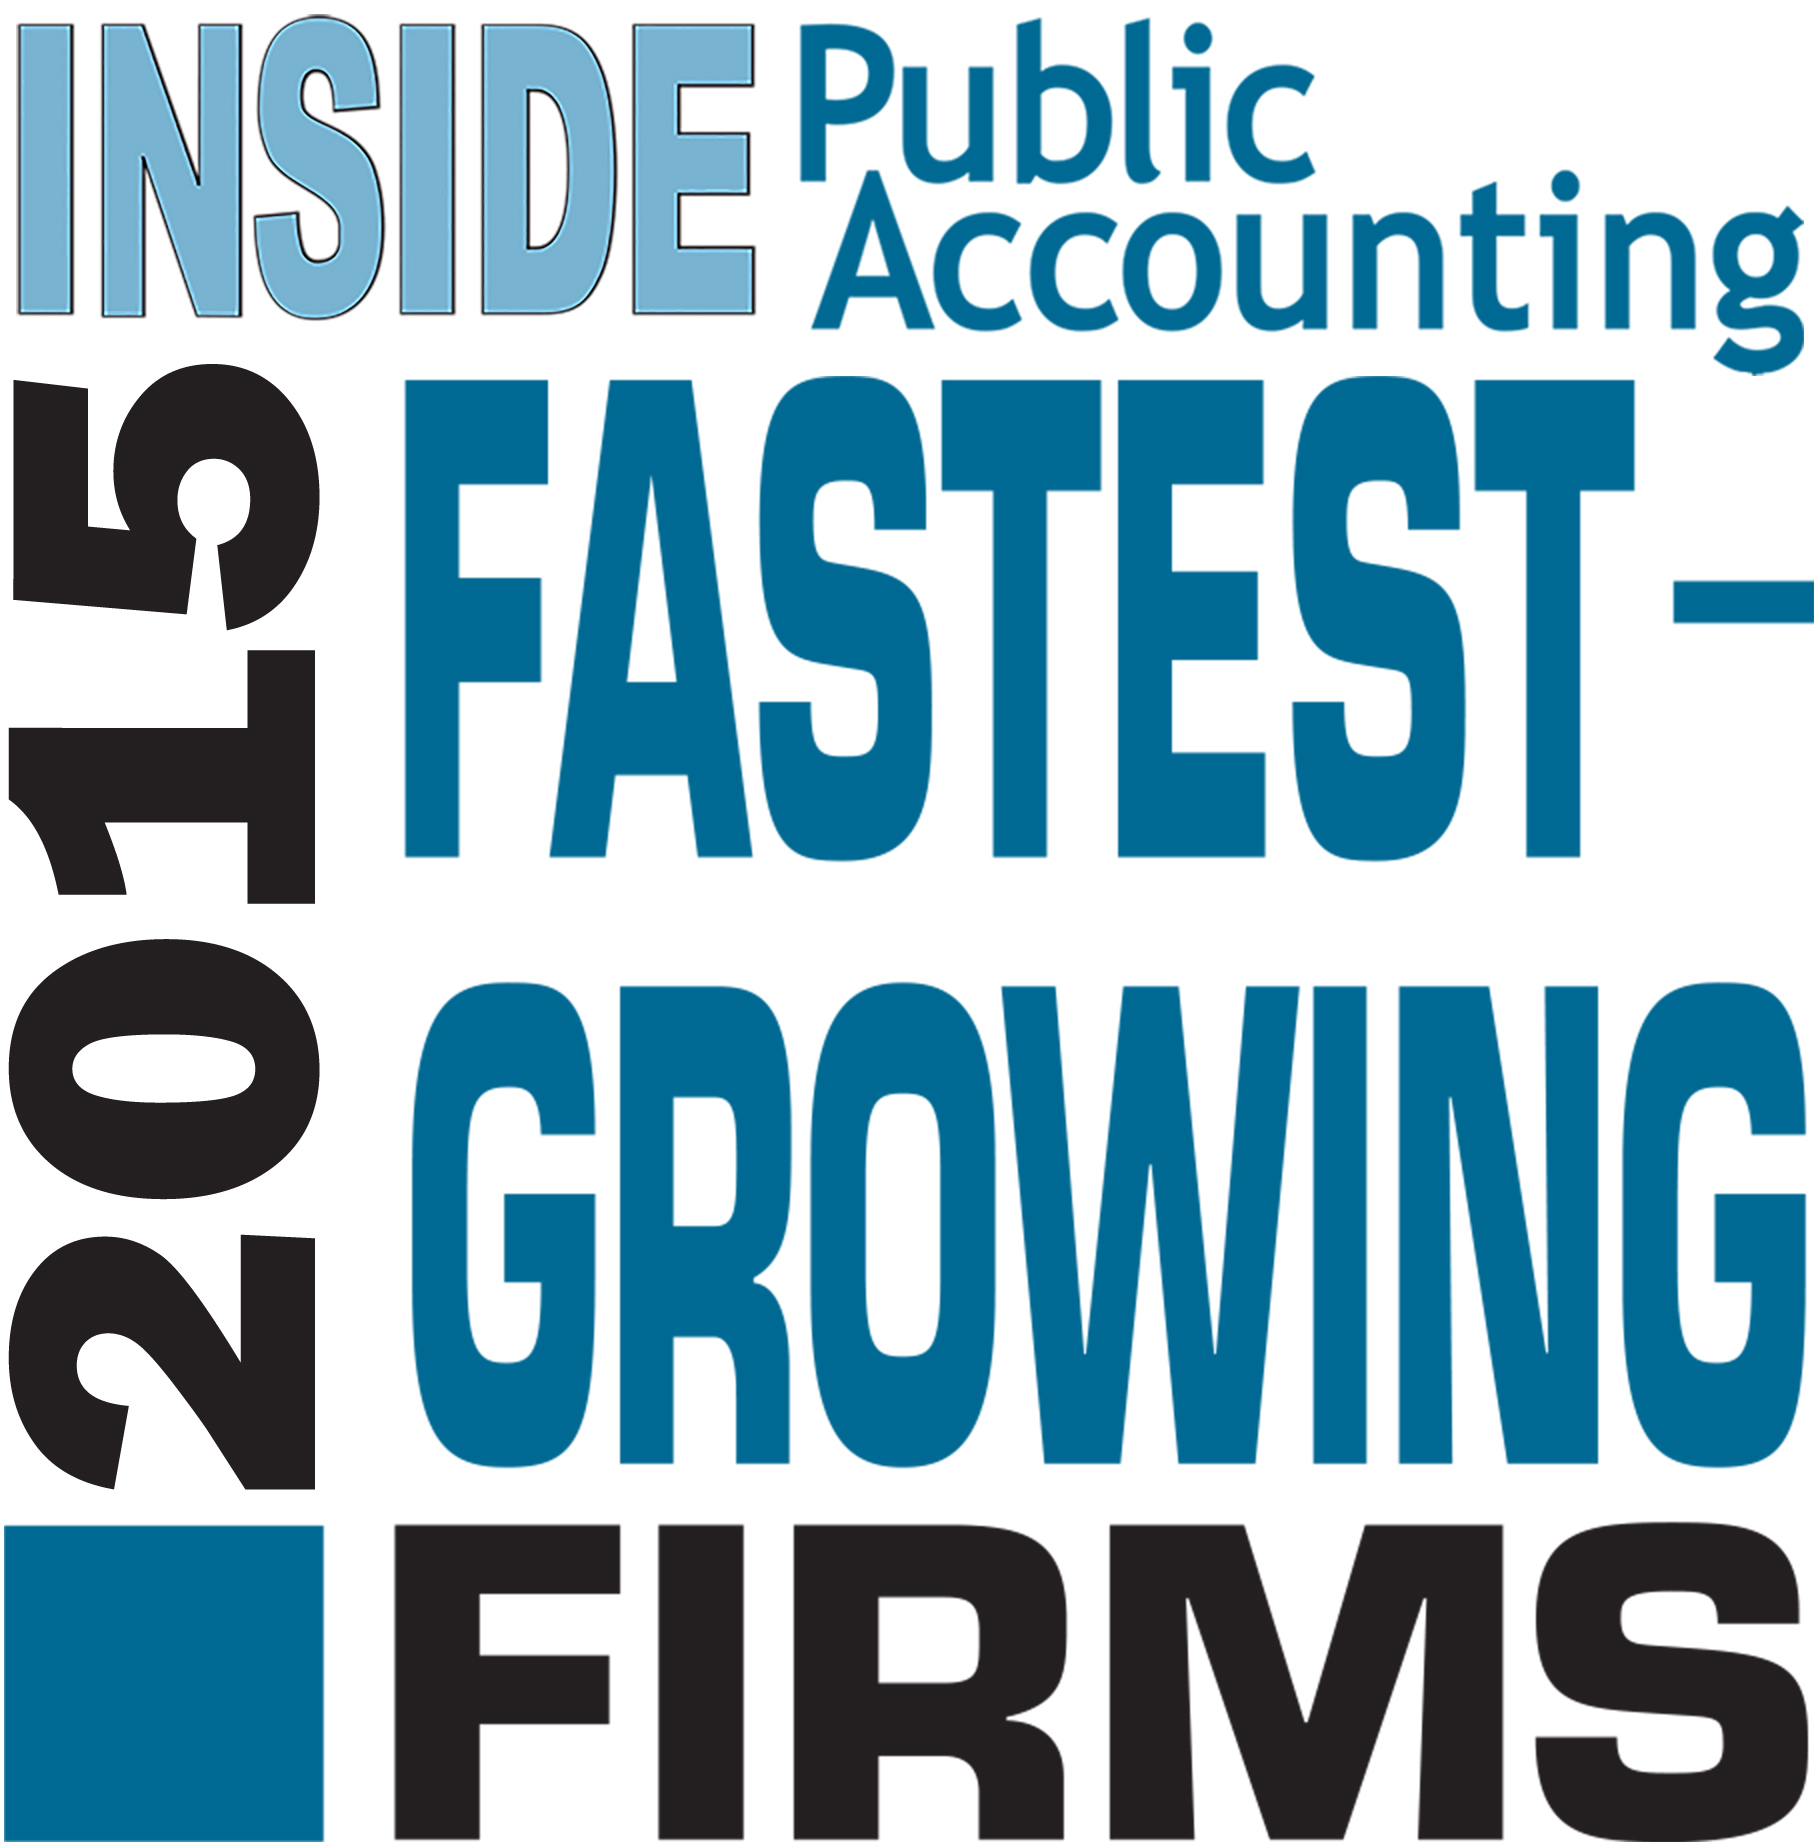 The 2015 Nationwide Fastest-Growing Firms